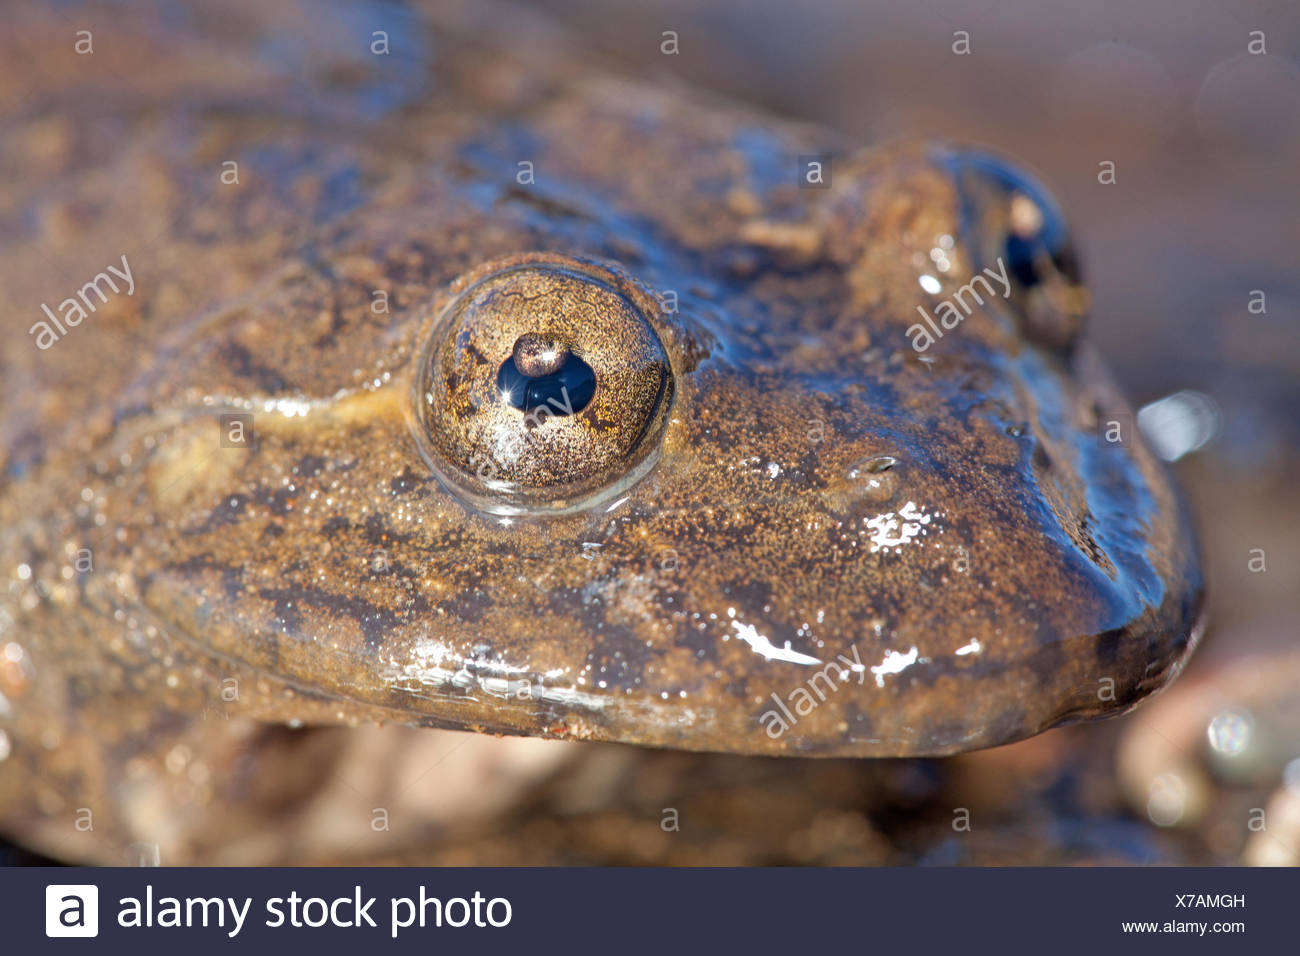 Photo of a Maluti river frog, it has an umbraculum in its eye that protects the eye from UV radiation and is an adaptation for living on high altitudes Stock Photo